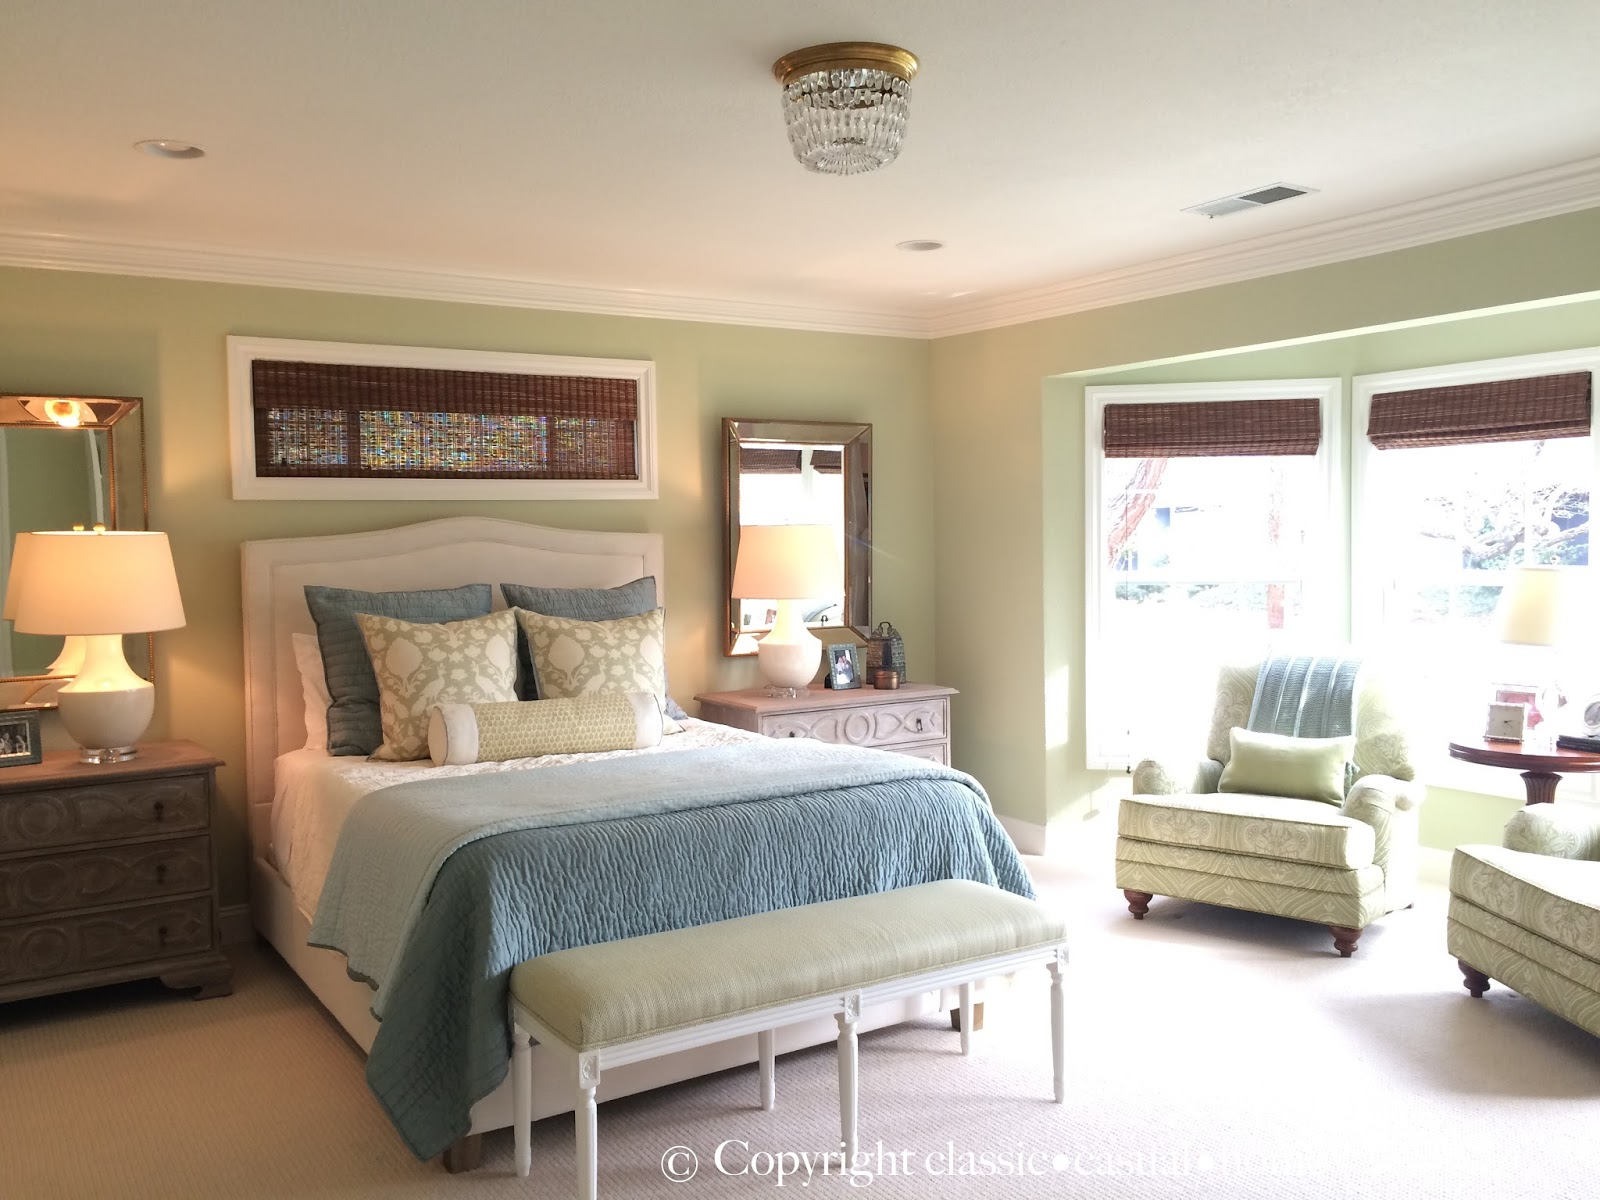 Hollingsworth Green Favorite Paint Colors Blog